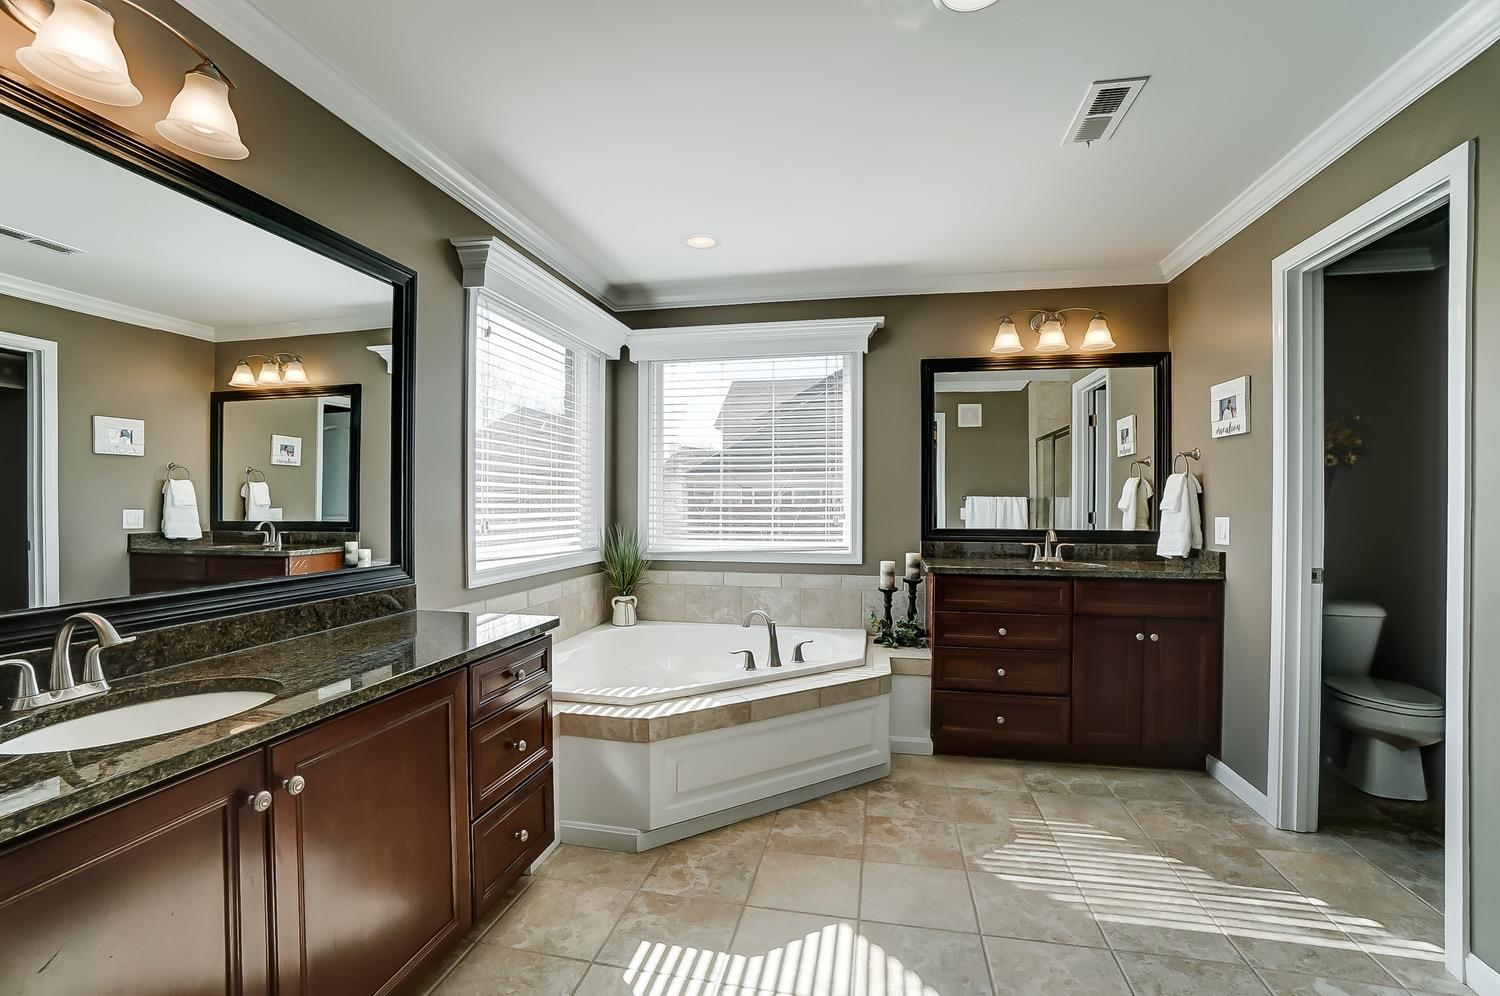 Master bath has soaking tub, double vanities and shower w/ built-in bench.